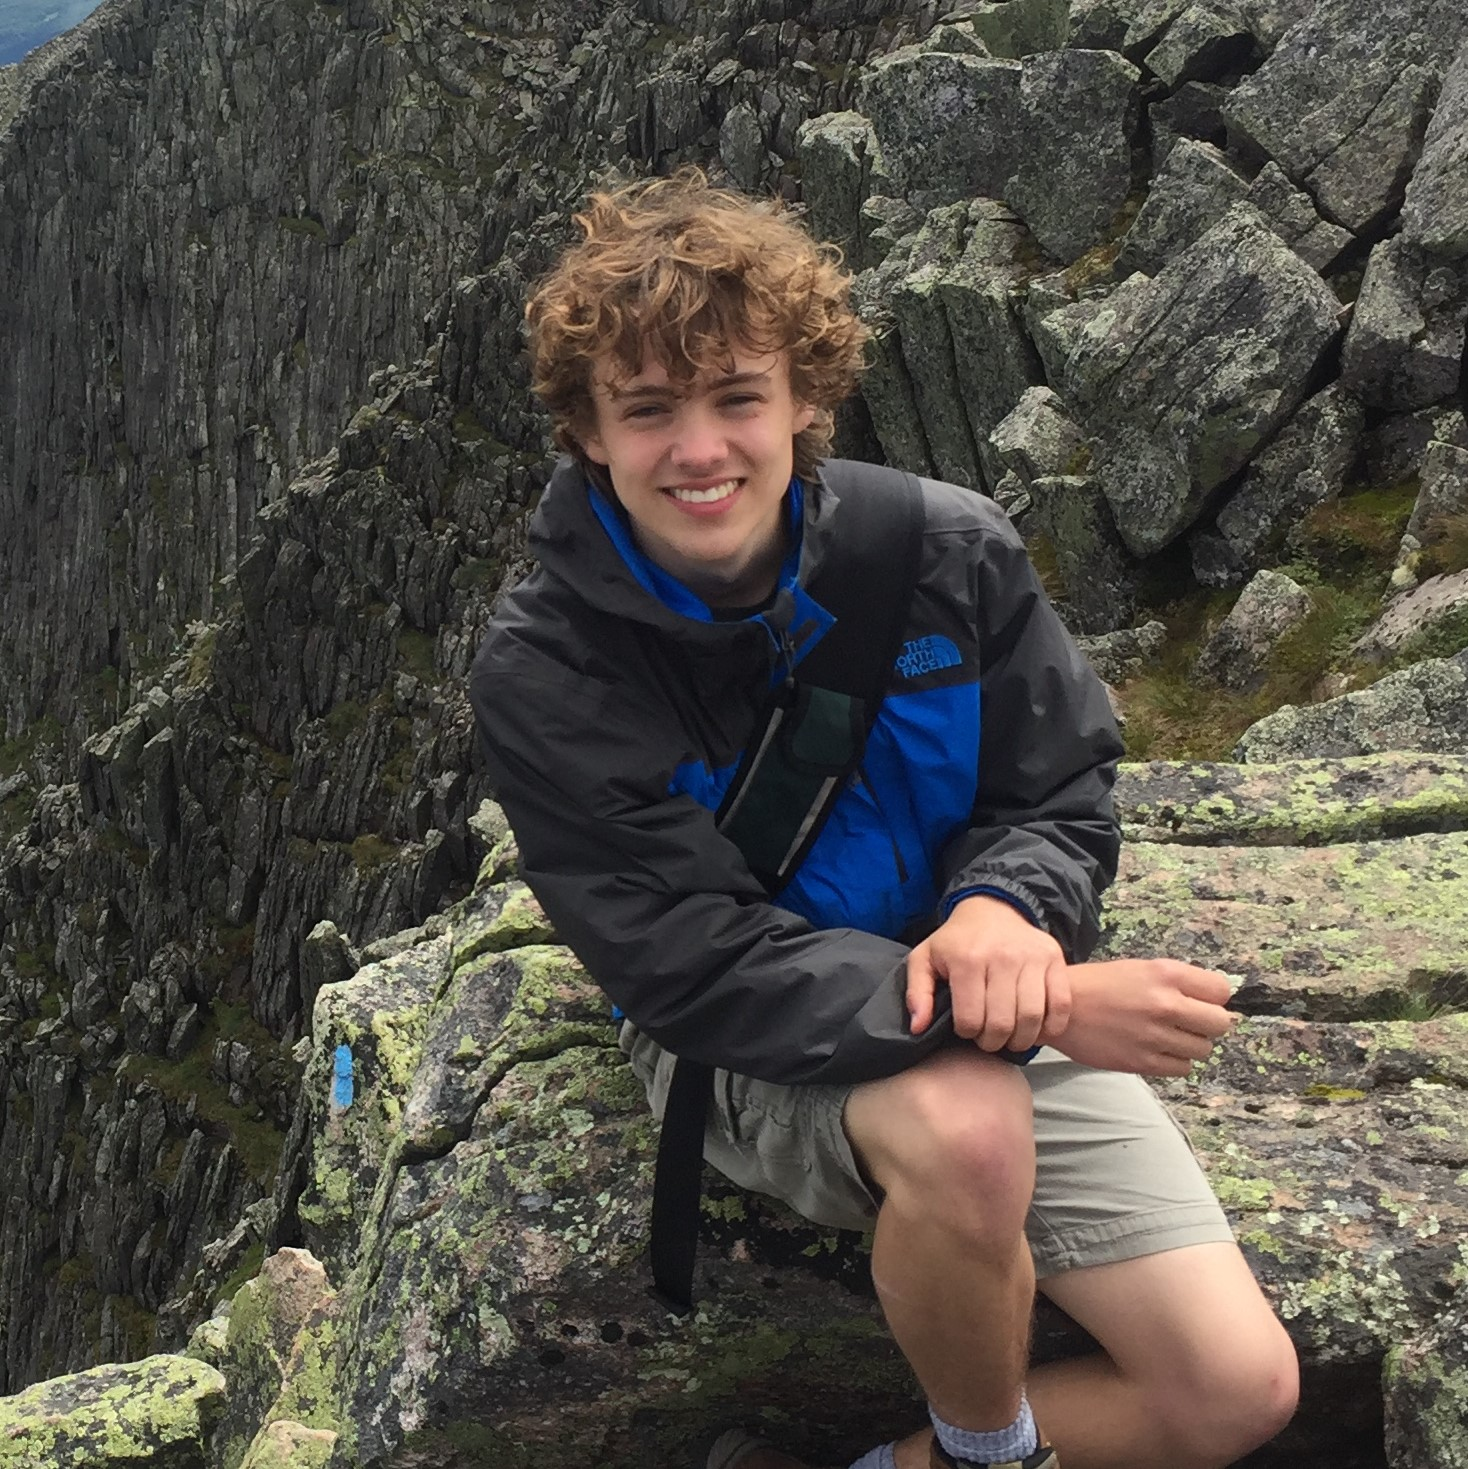 Name:  William Fahy   Graduation year:  2021   Major:  Chemistry   Interests:  Music (I play flute and saxophone), robotics, game design, hiking and cooking.   Fun fact:  I own and play 16 different musical instruments (mostly flutes)